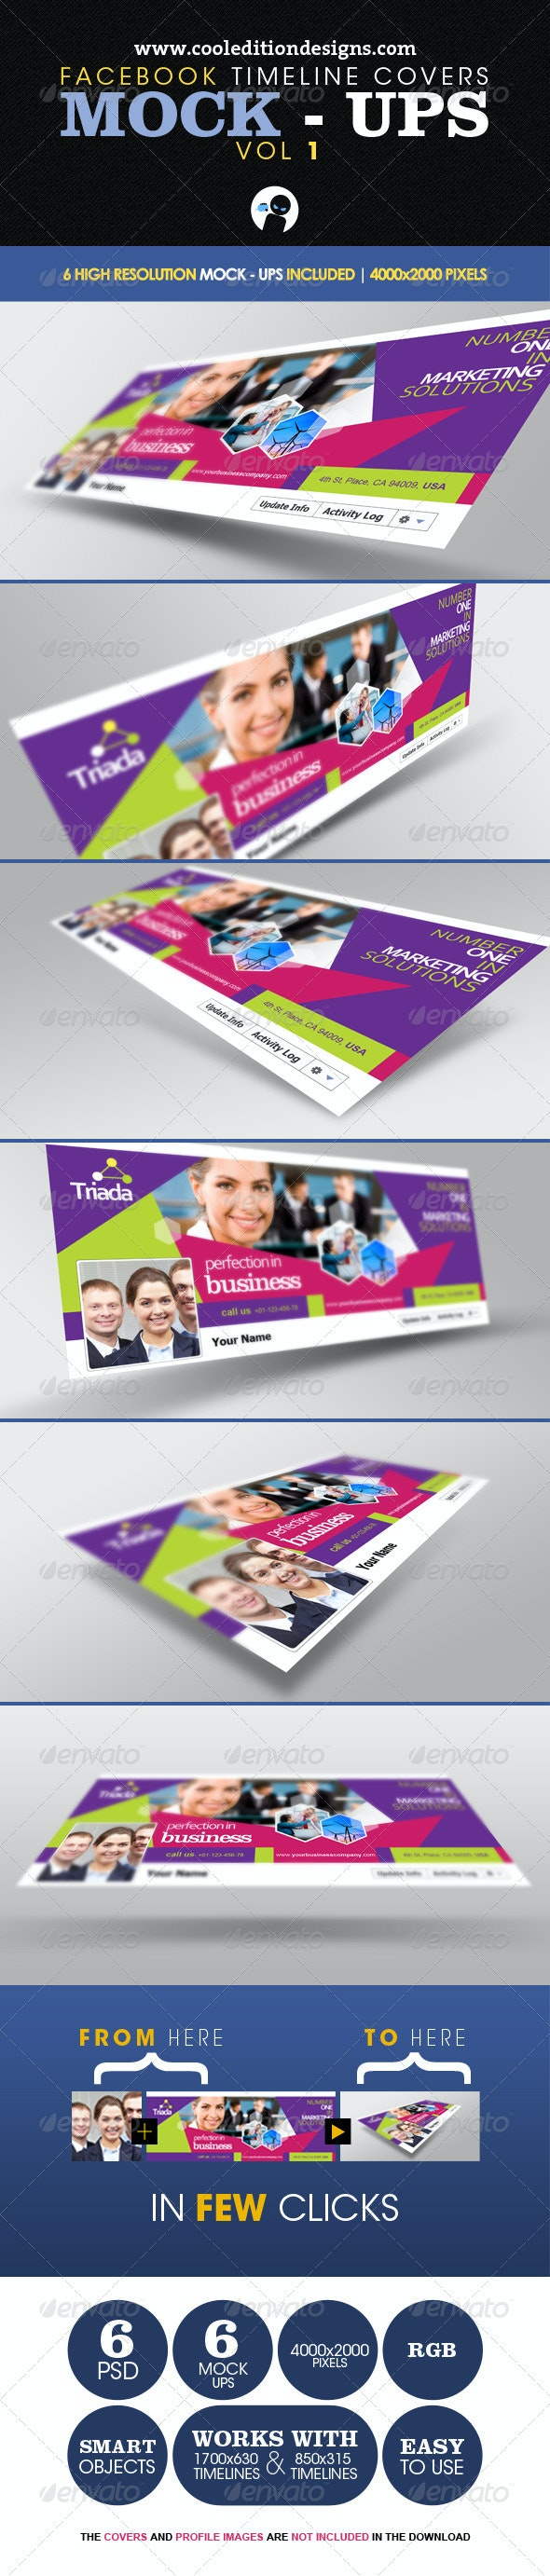 Facebook Timeline Covers Mock-Ups VOL1 - Miscellaneous Print